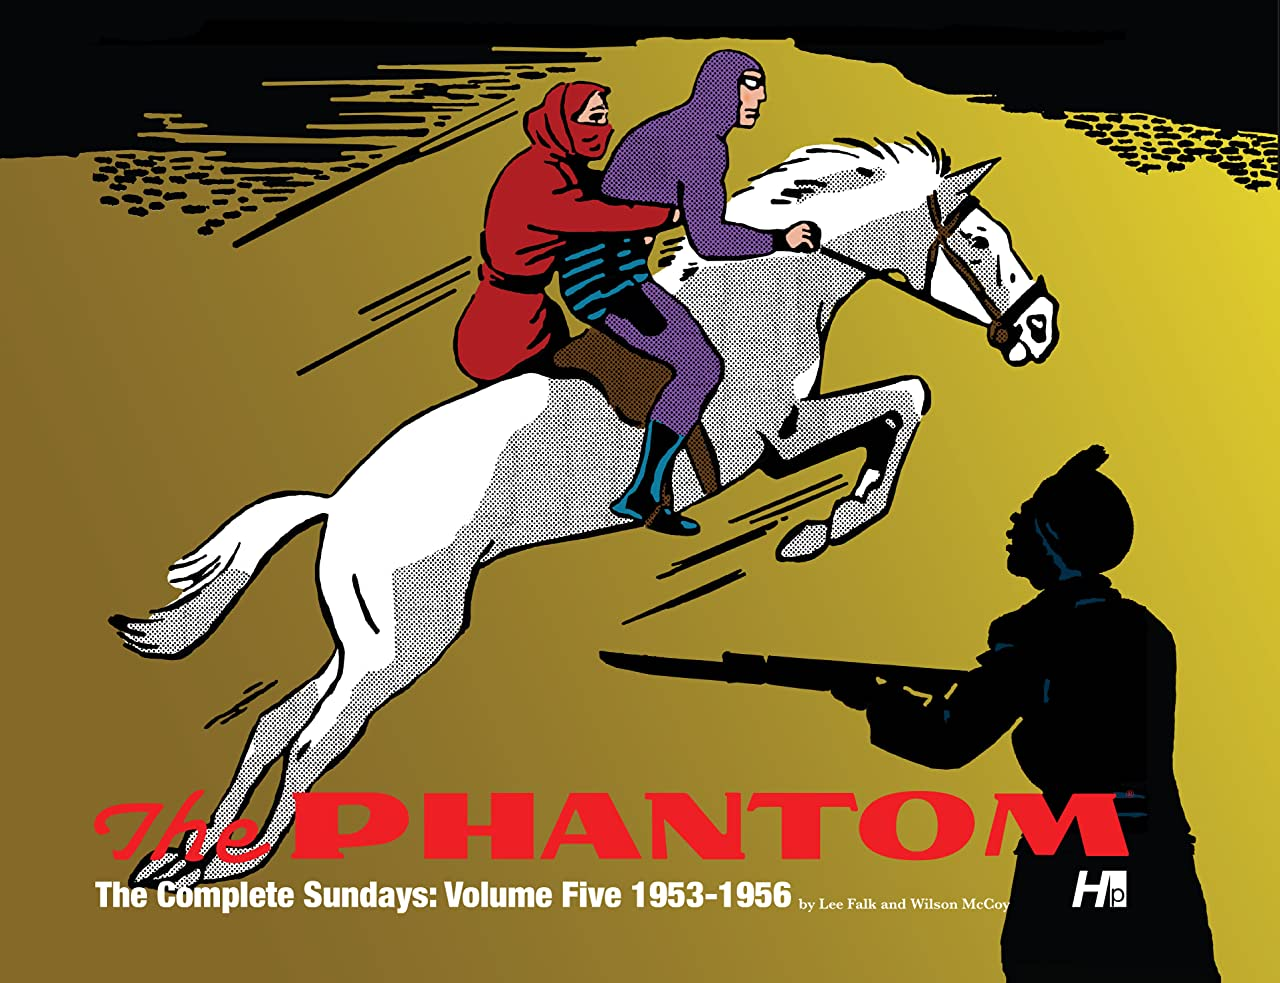 The Phantom: The Complete Sundays Tome 5